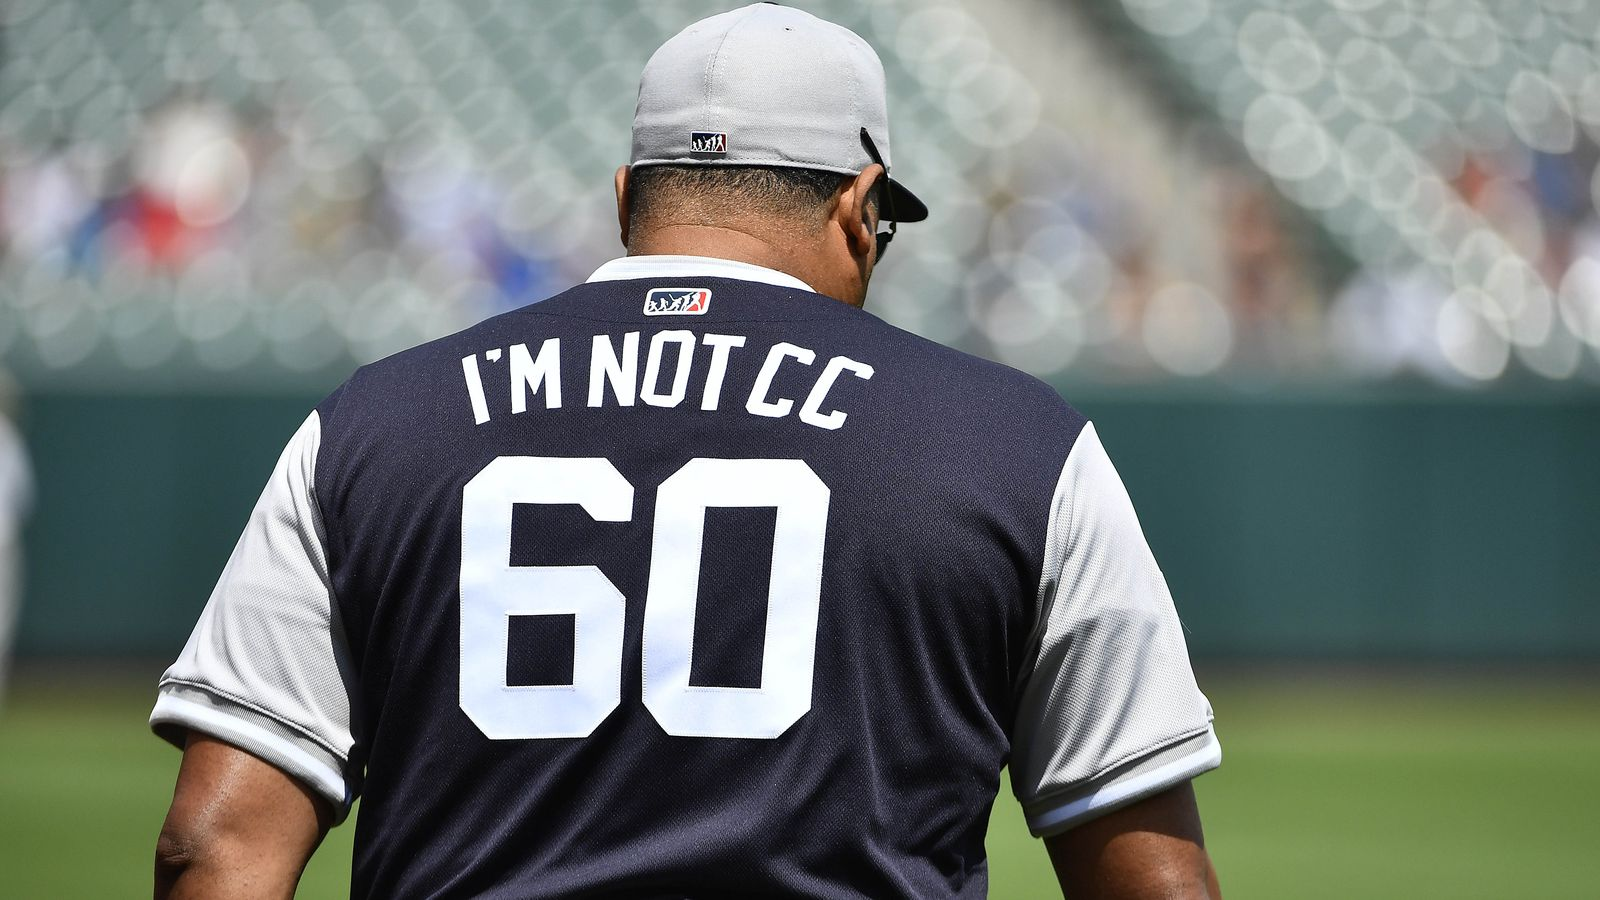 the latest caf01 3af48 Yankees reveal Players' Weekend nicknames - Pinstripe Alley